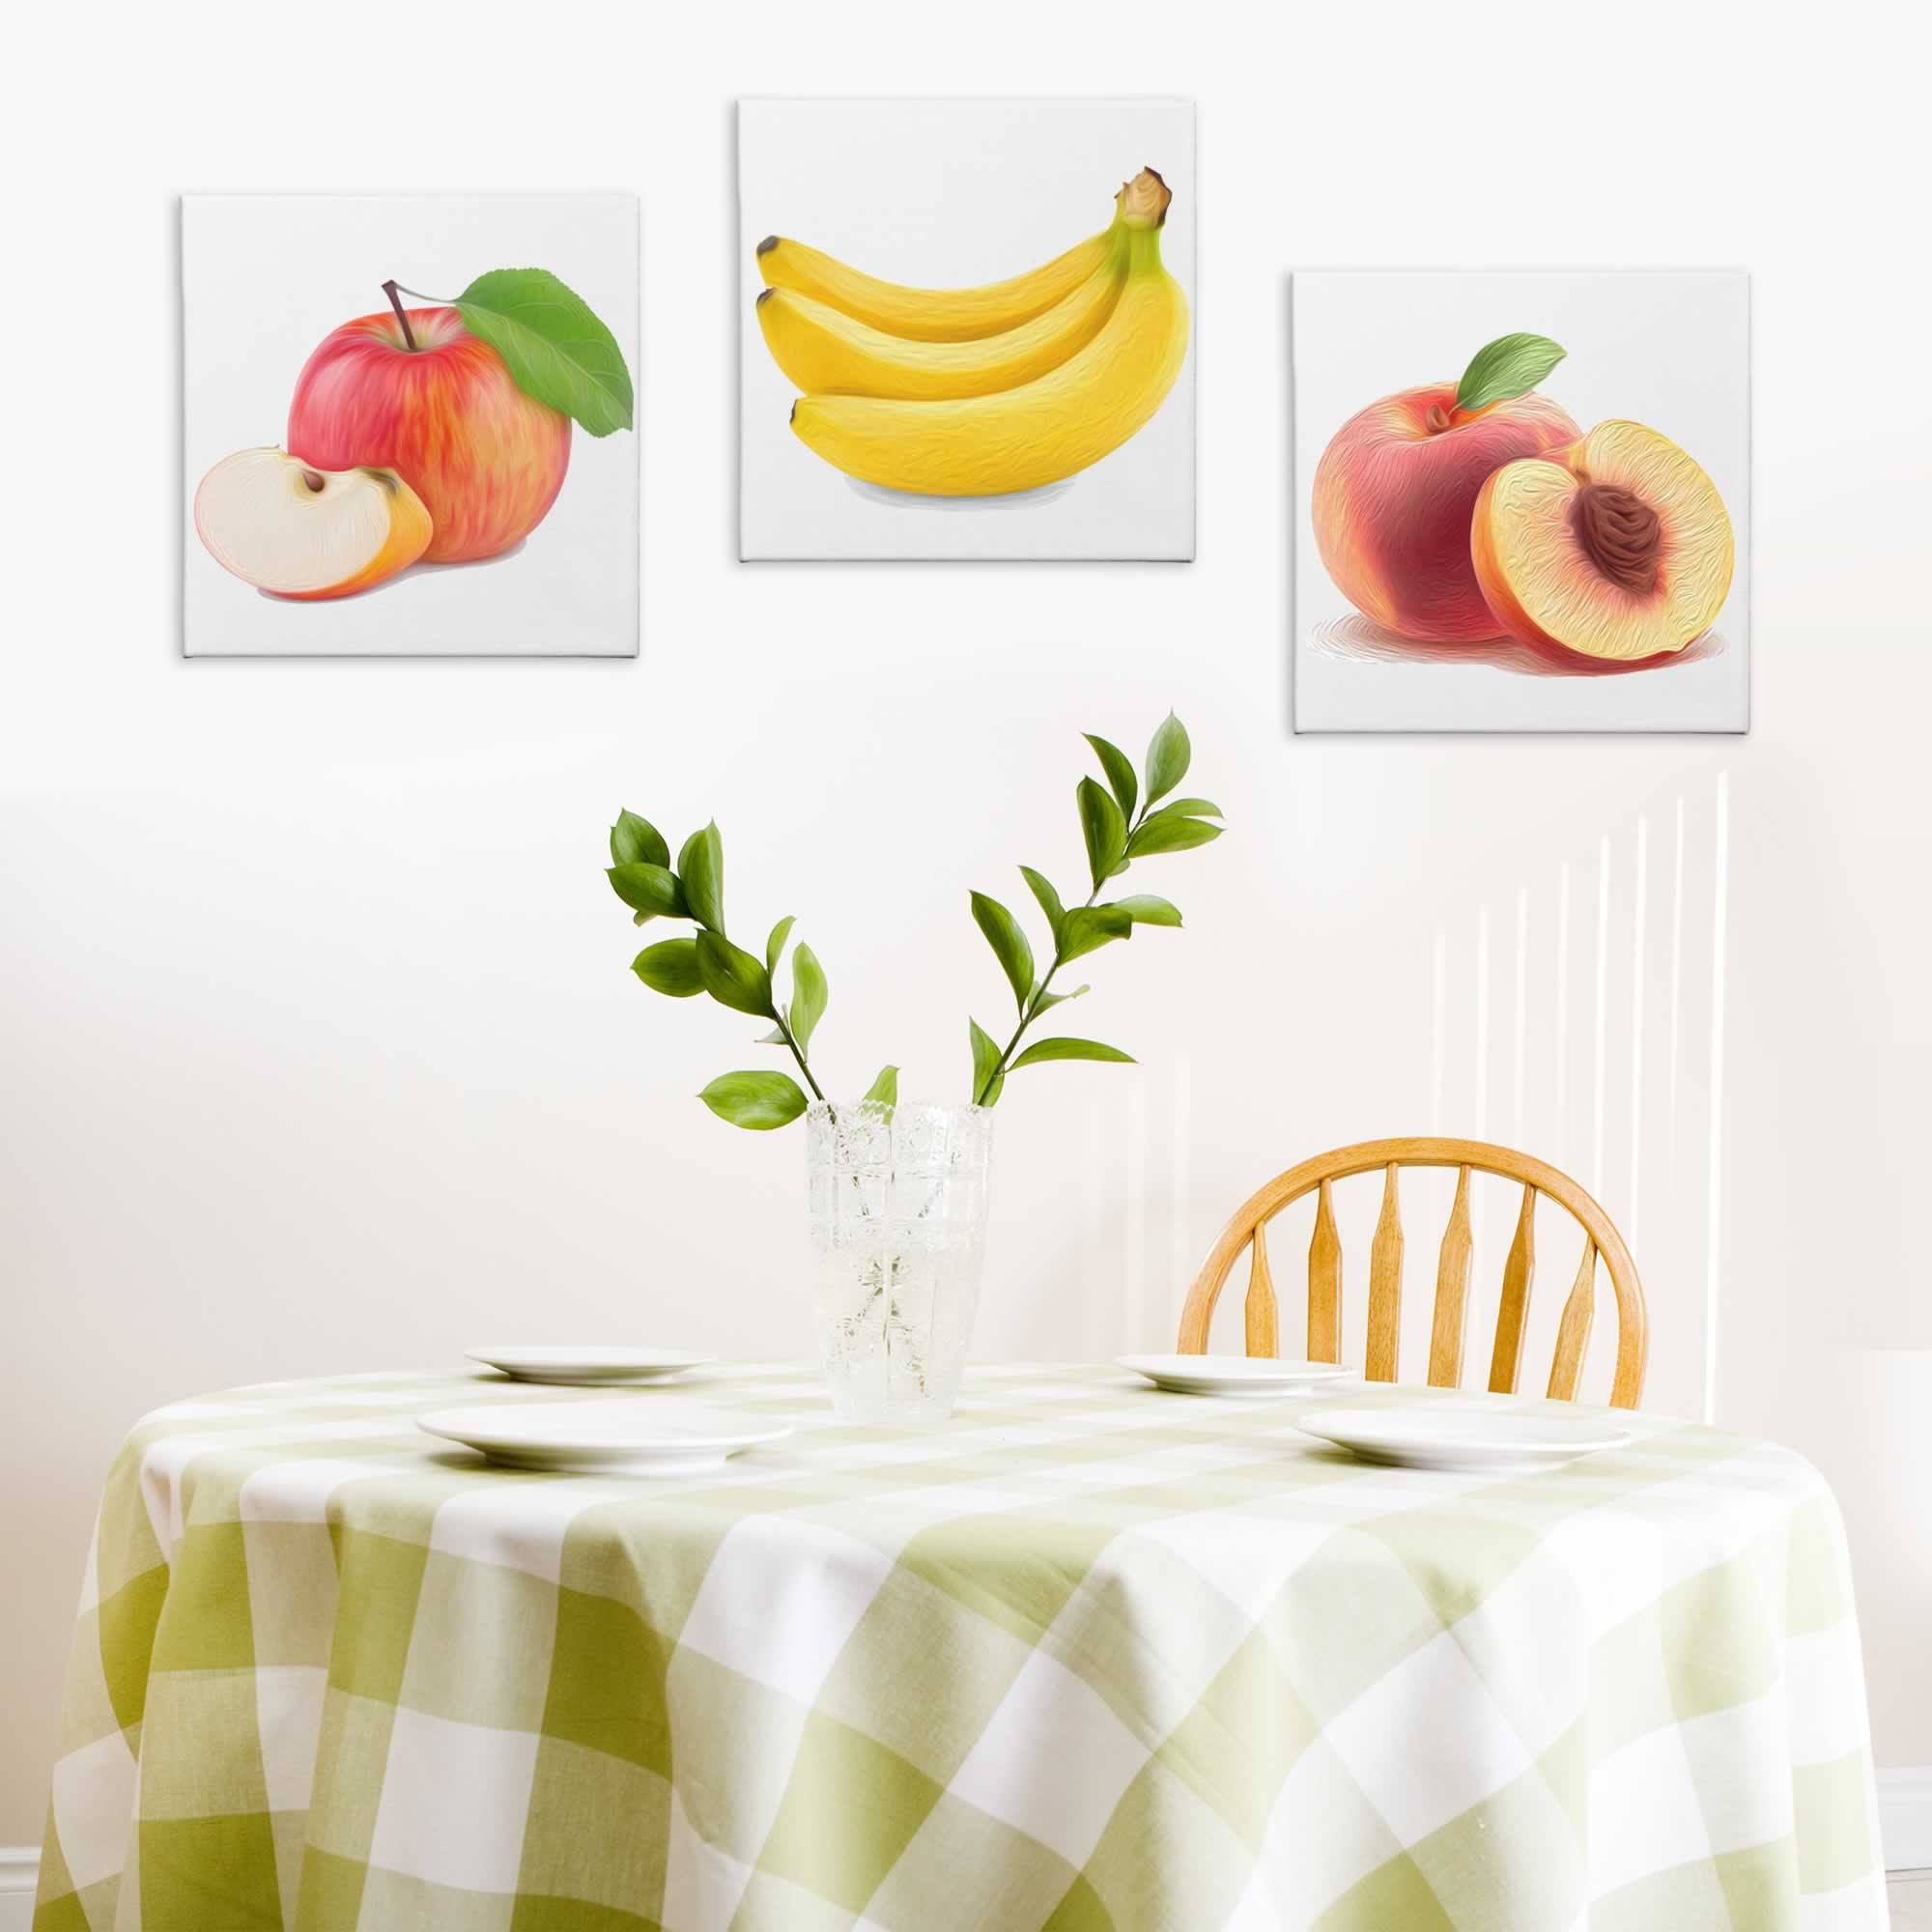 Fruit Salad - Contemporary giclee Painting Print on Canvas - Lifestyle Image